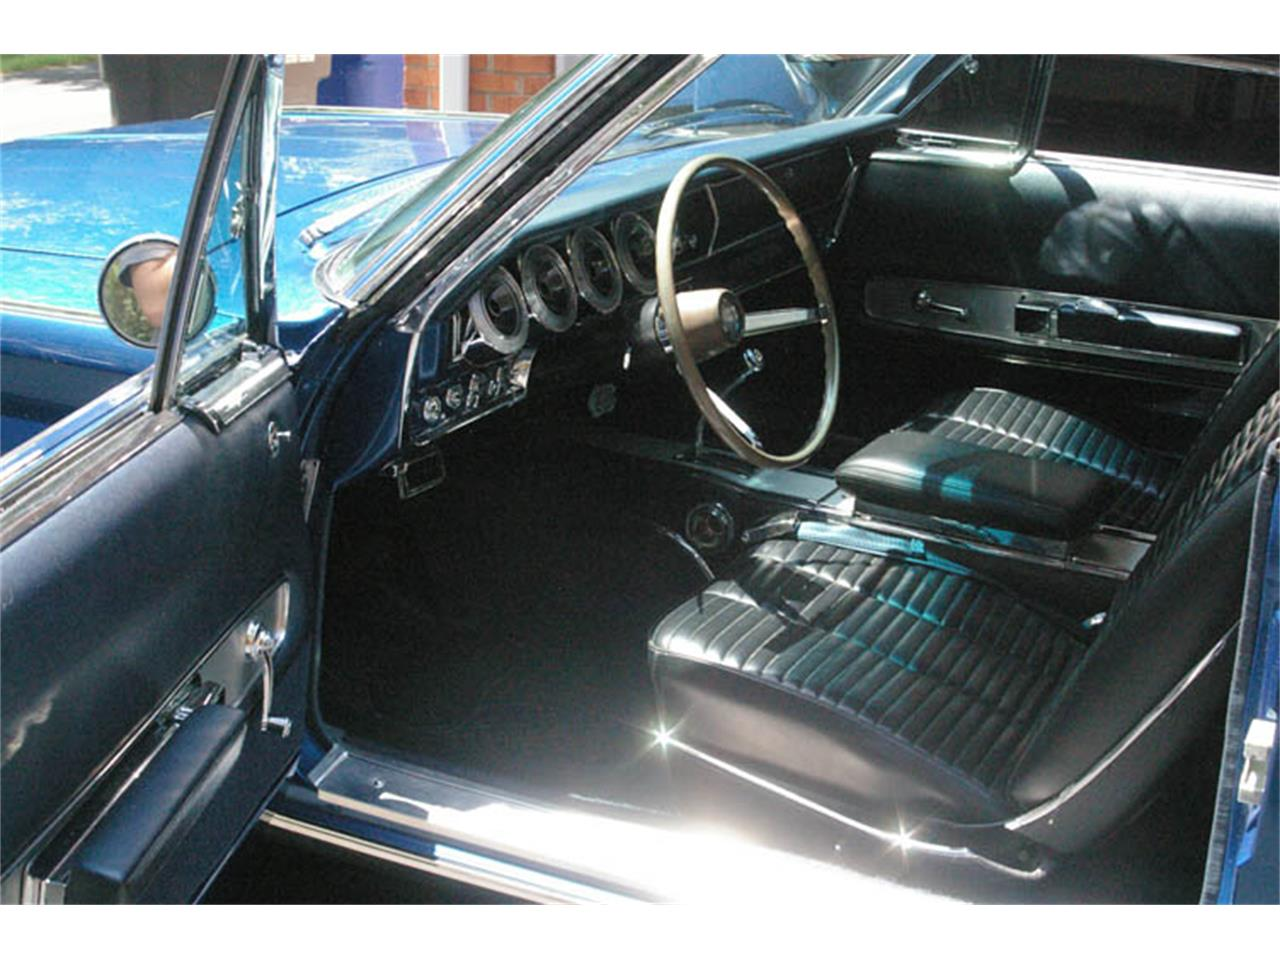 Large Picture of '66 Dodge Charger located in Winston-Salem North Carolina - $62,500.00 Offered by a Private Seller - FQAT